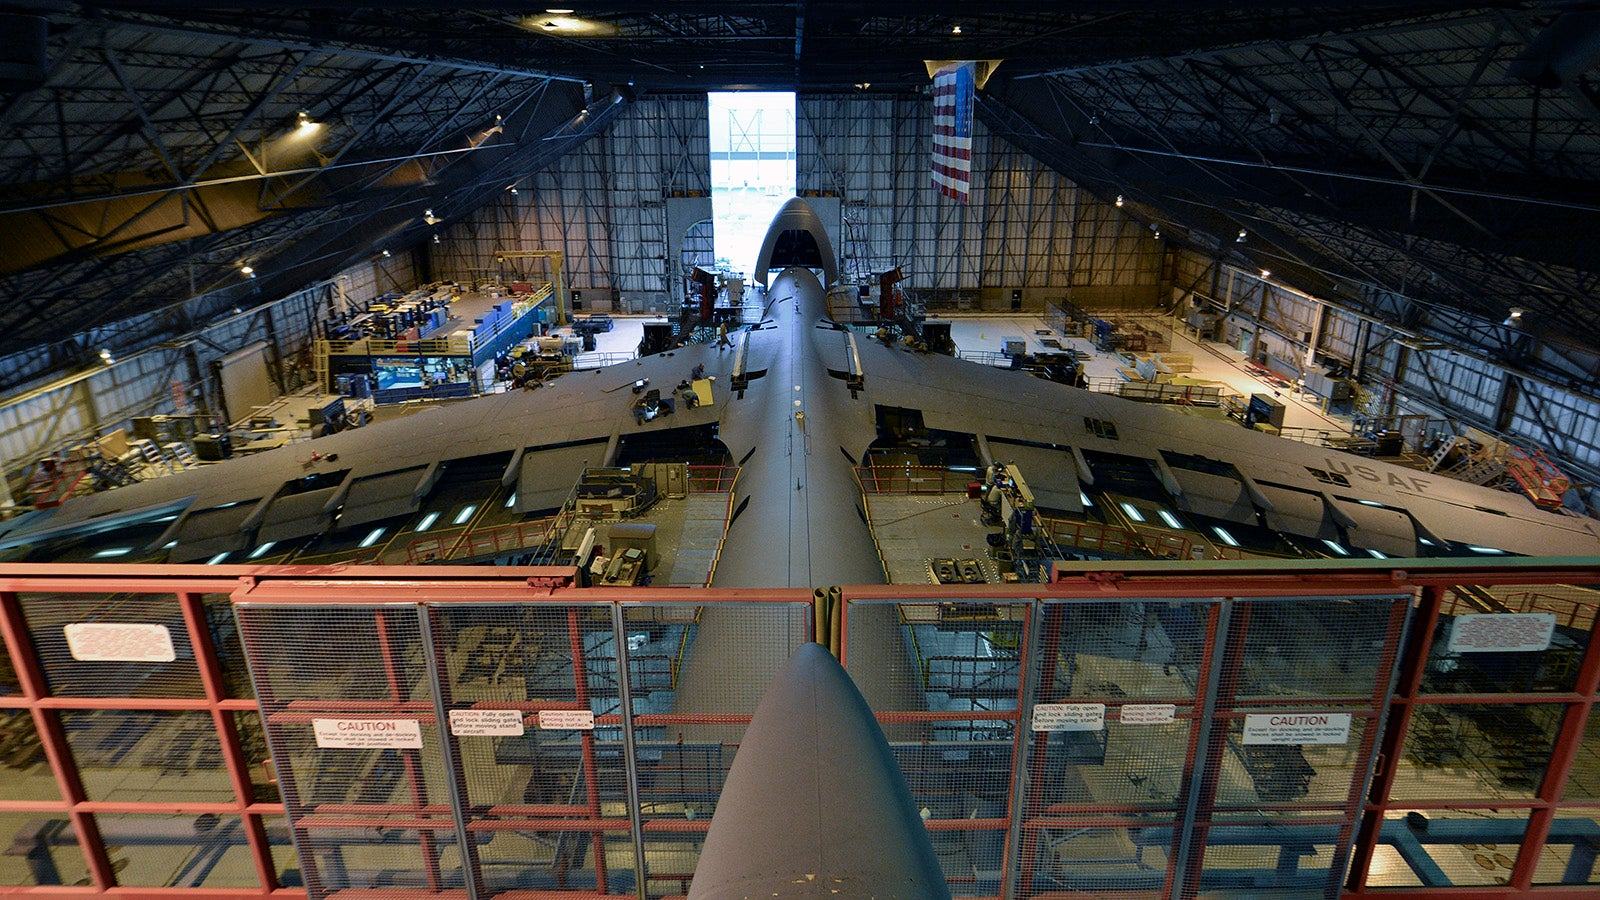 This Is How the Largest U.S. Military Aeroplane Gets Stripped Down